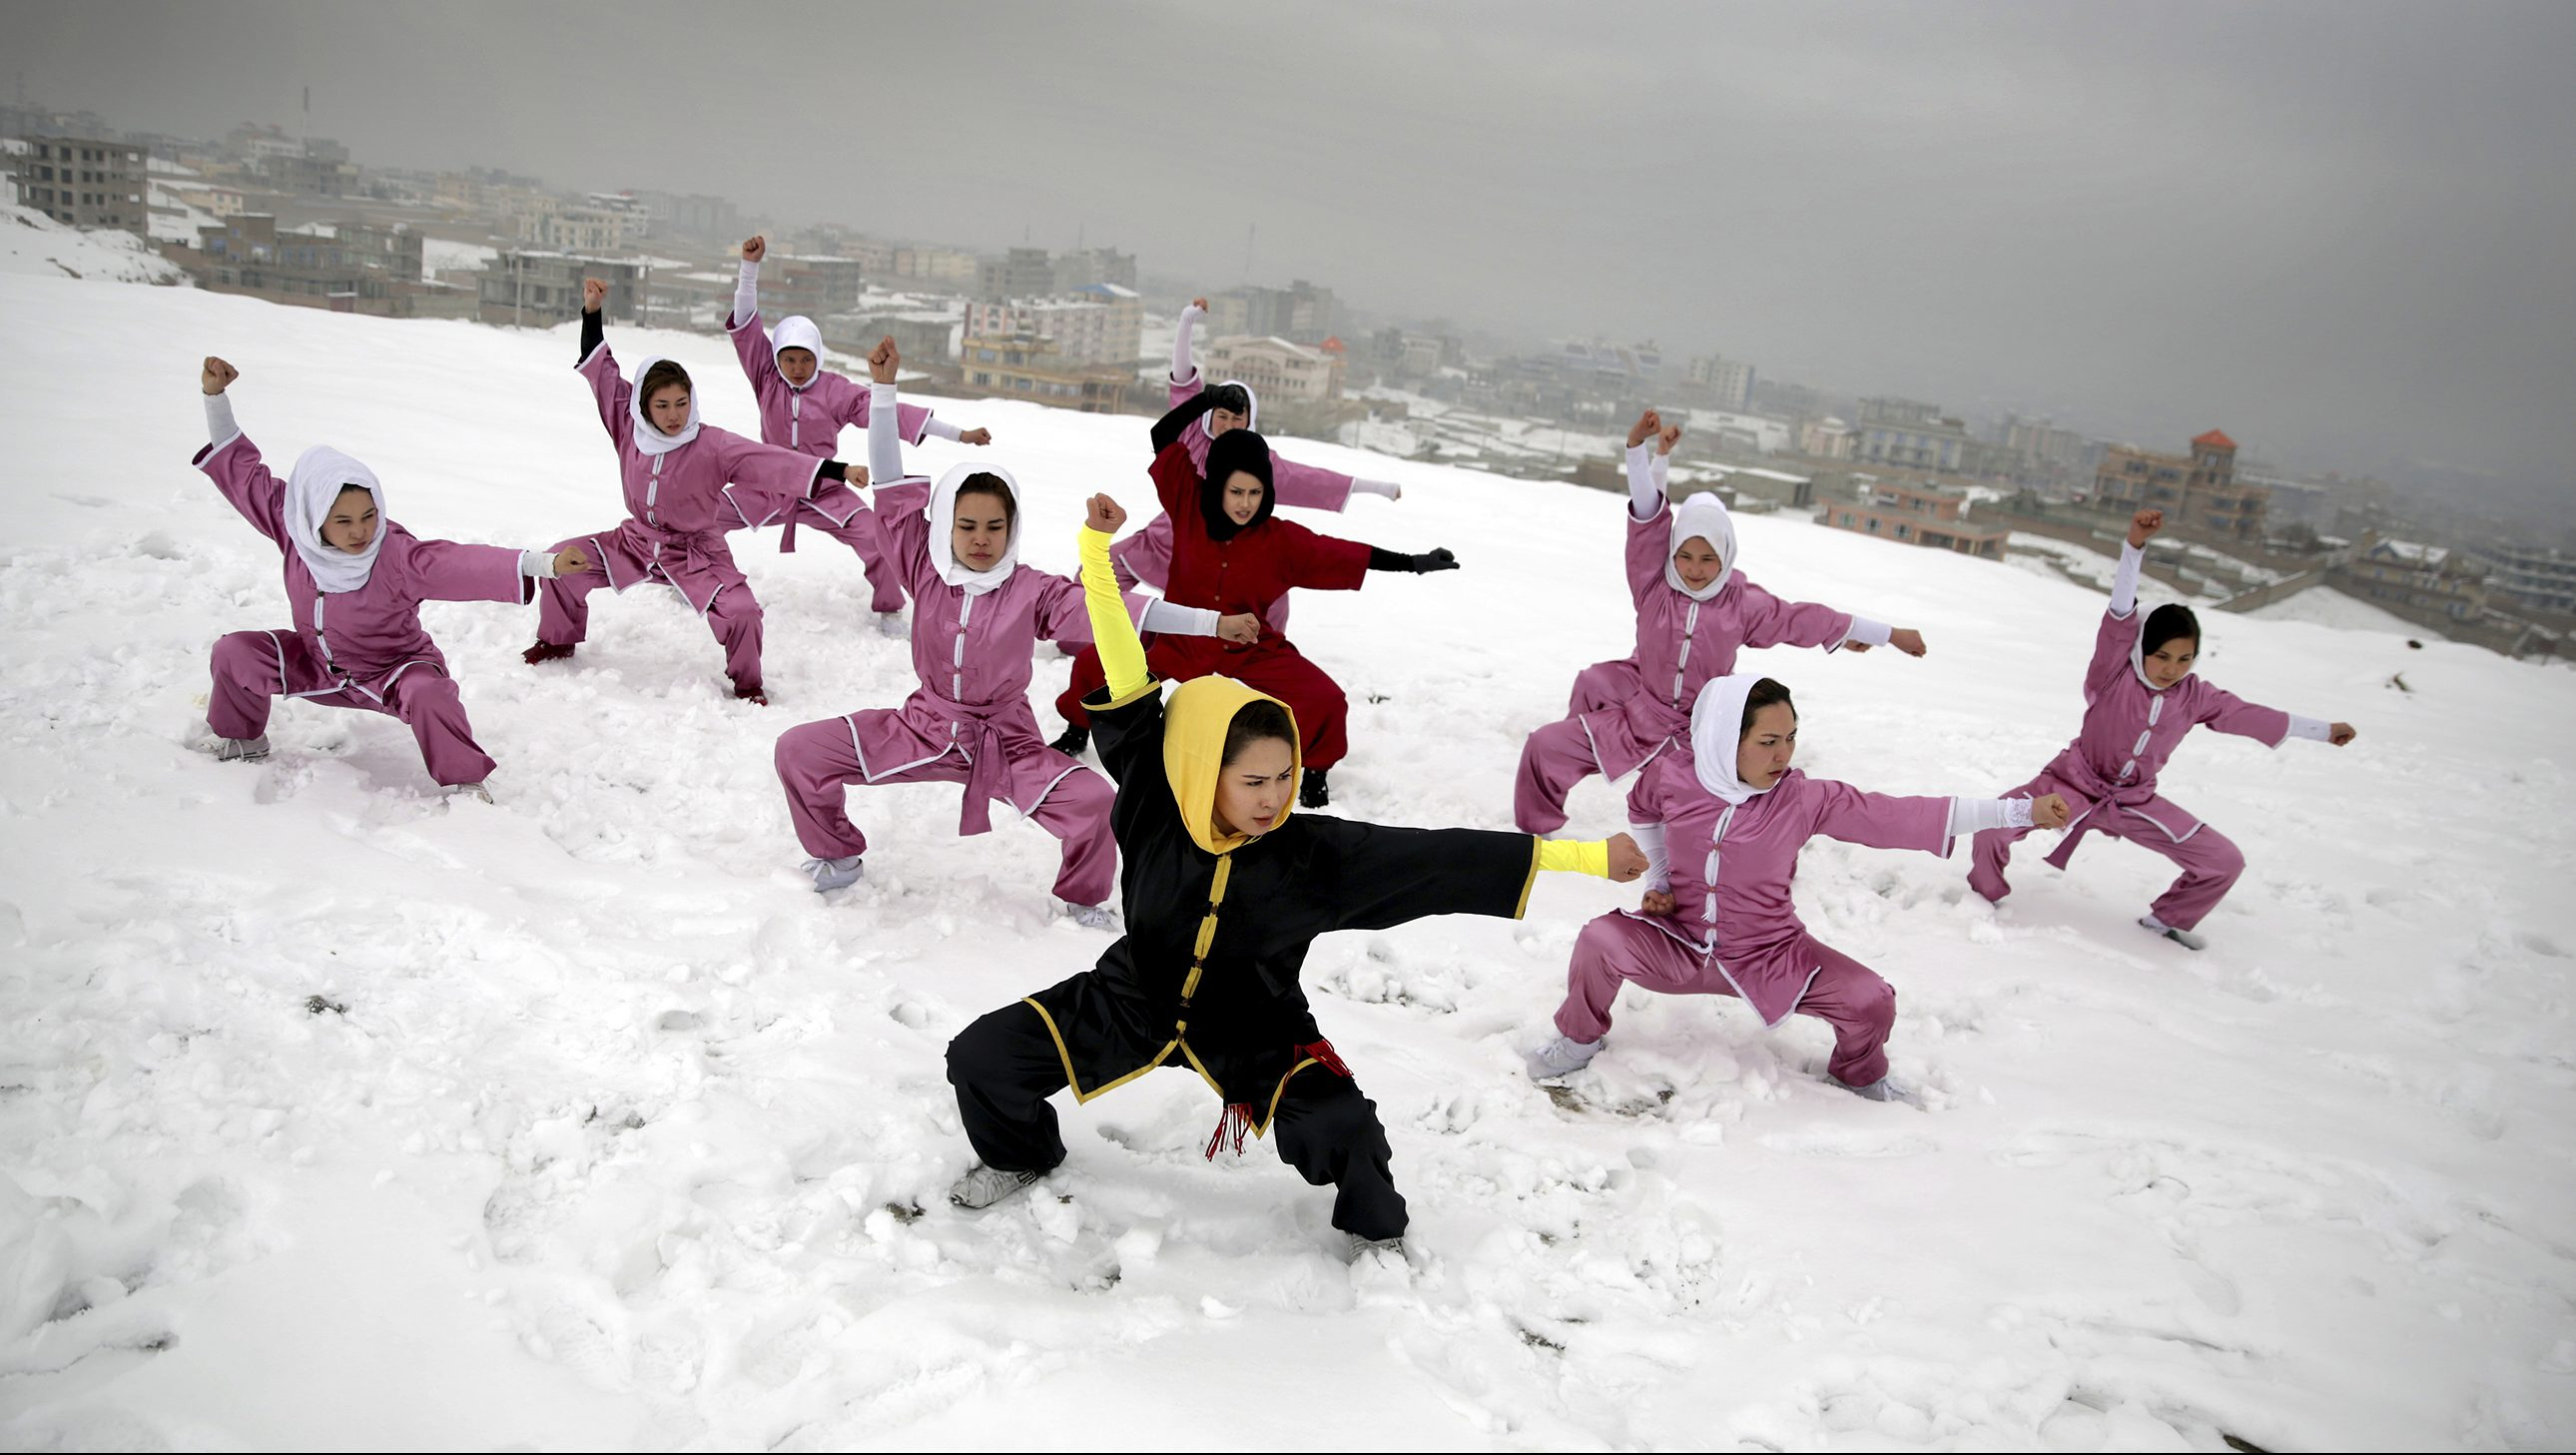 Women in Afghanistan Training to Compete in Shaolin Martial Arts